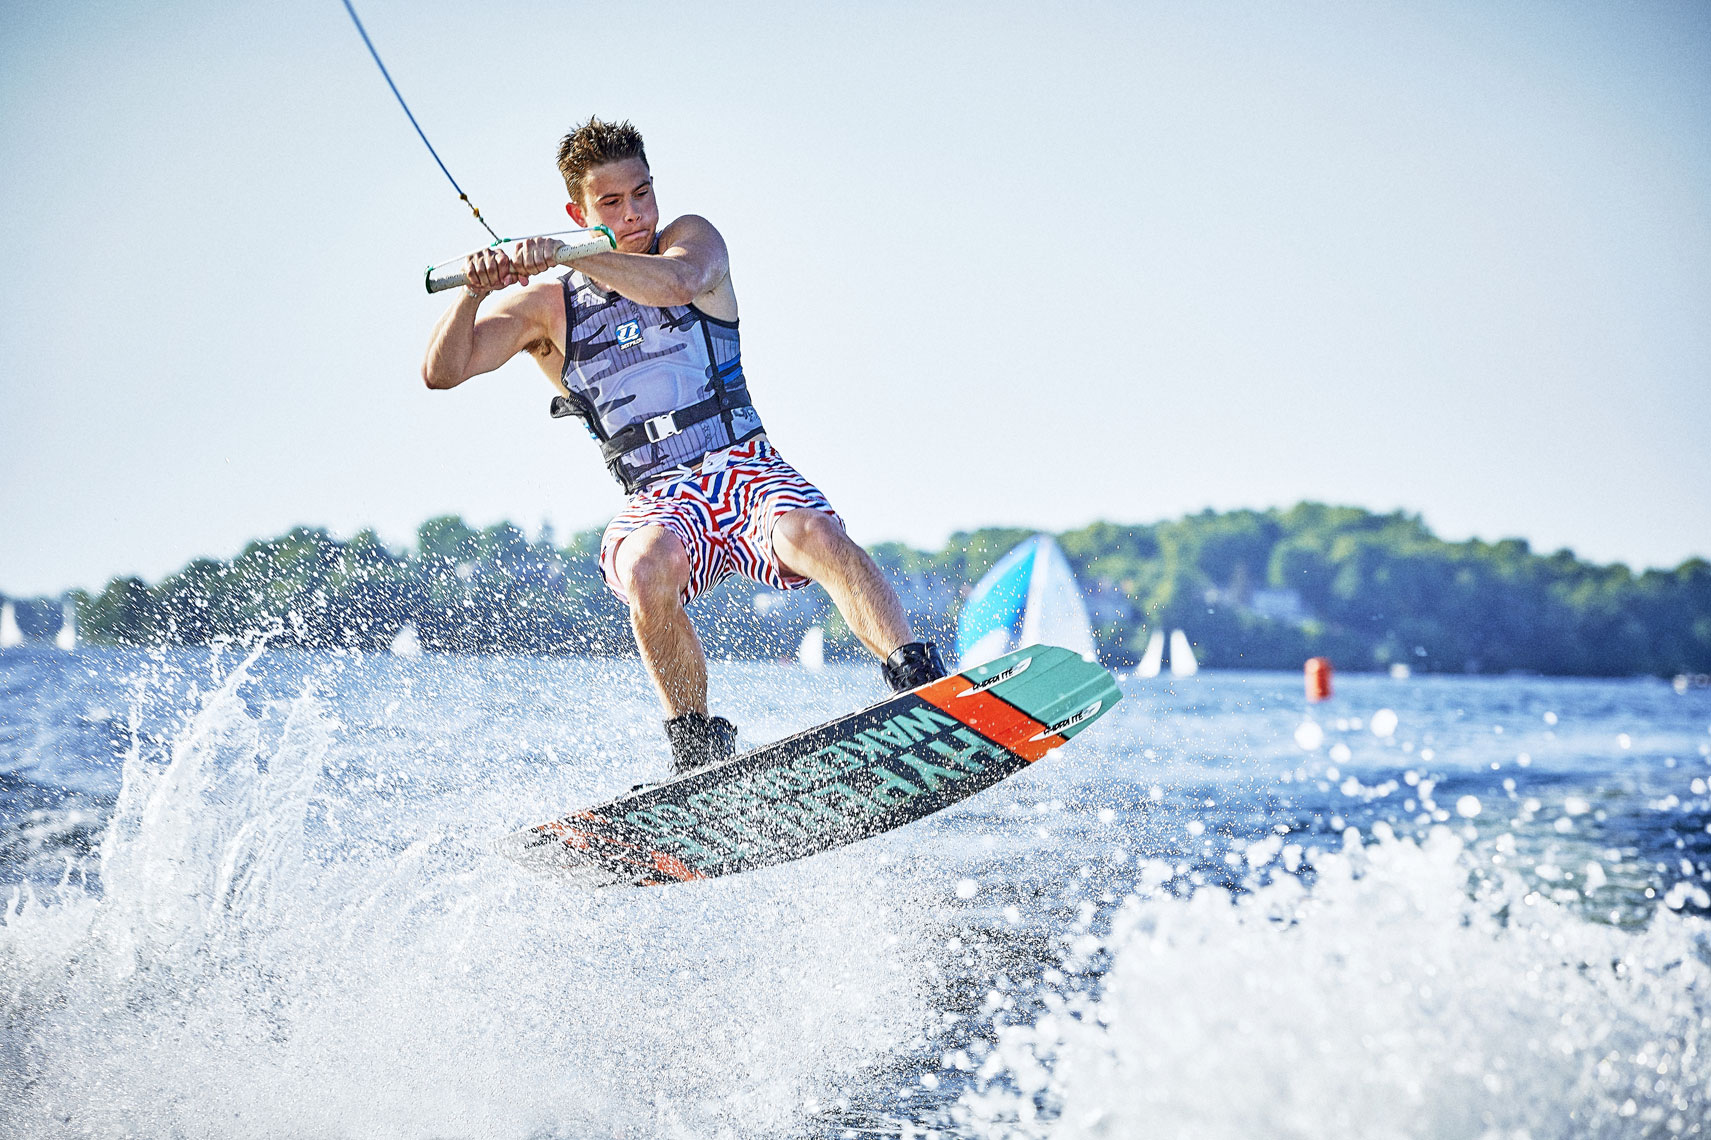 DryeSupply Shorts/man/wakeboarding/jumping/lifestyle photography